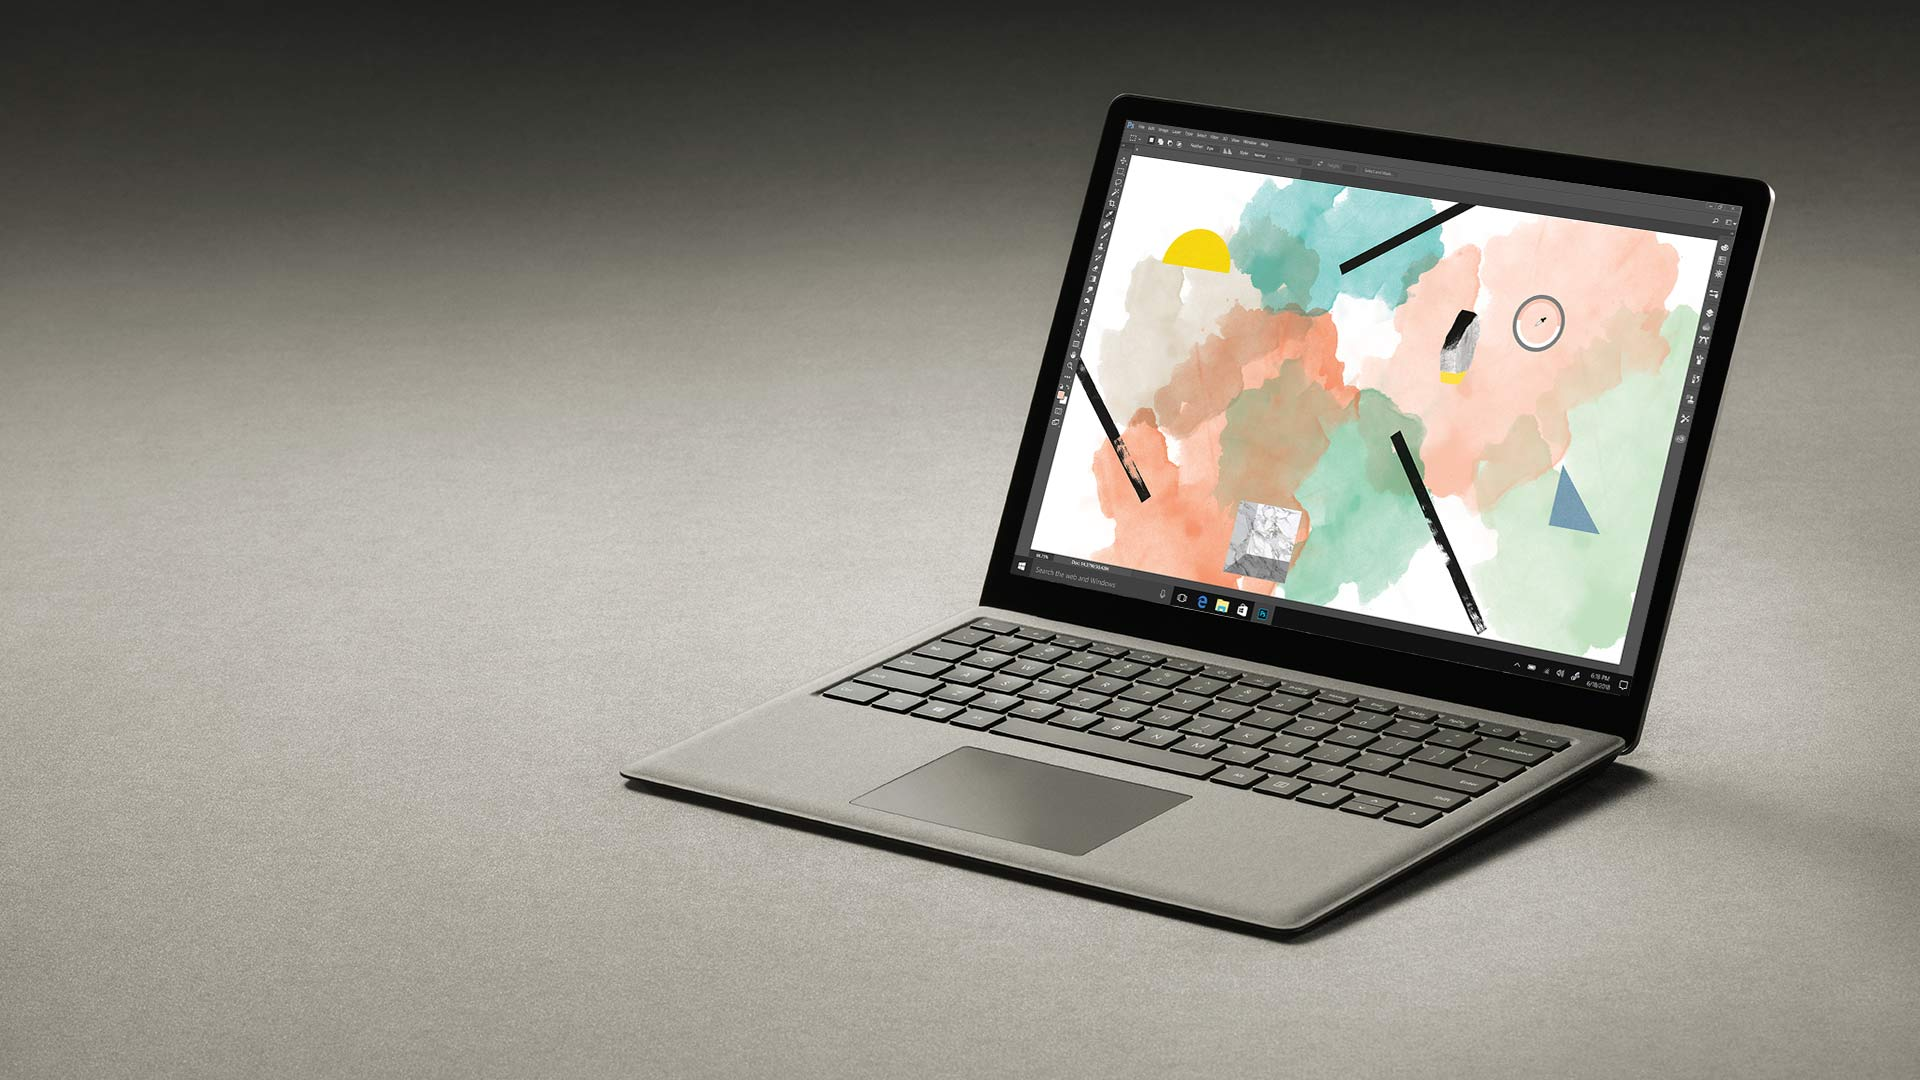 Goudkleurige Surface Laptop met Adobe Photoshop-scherm.